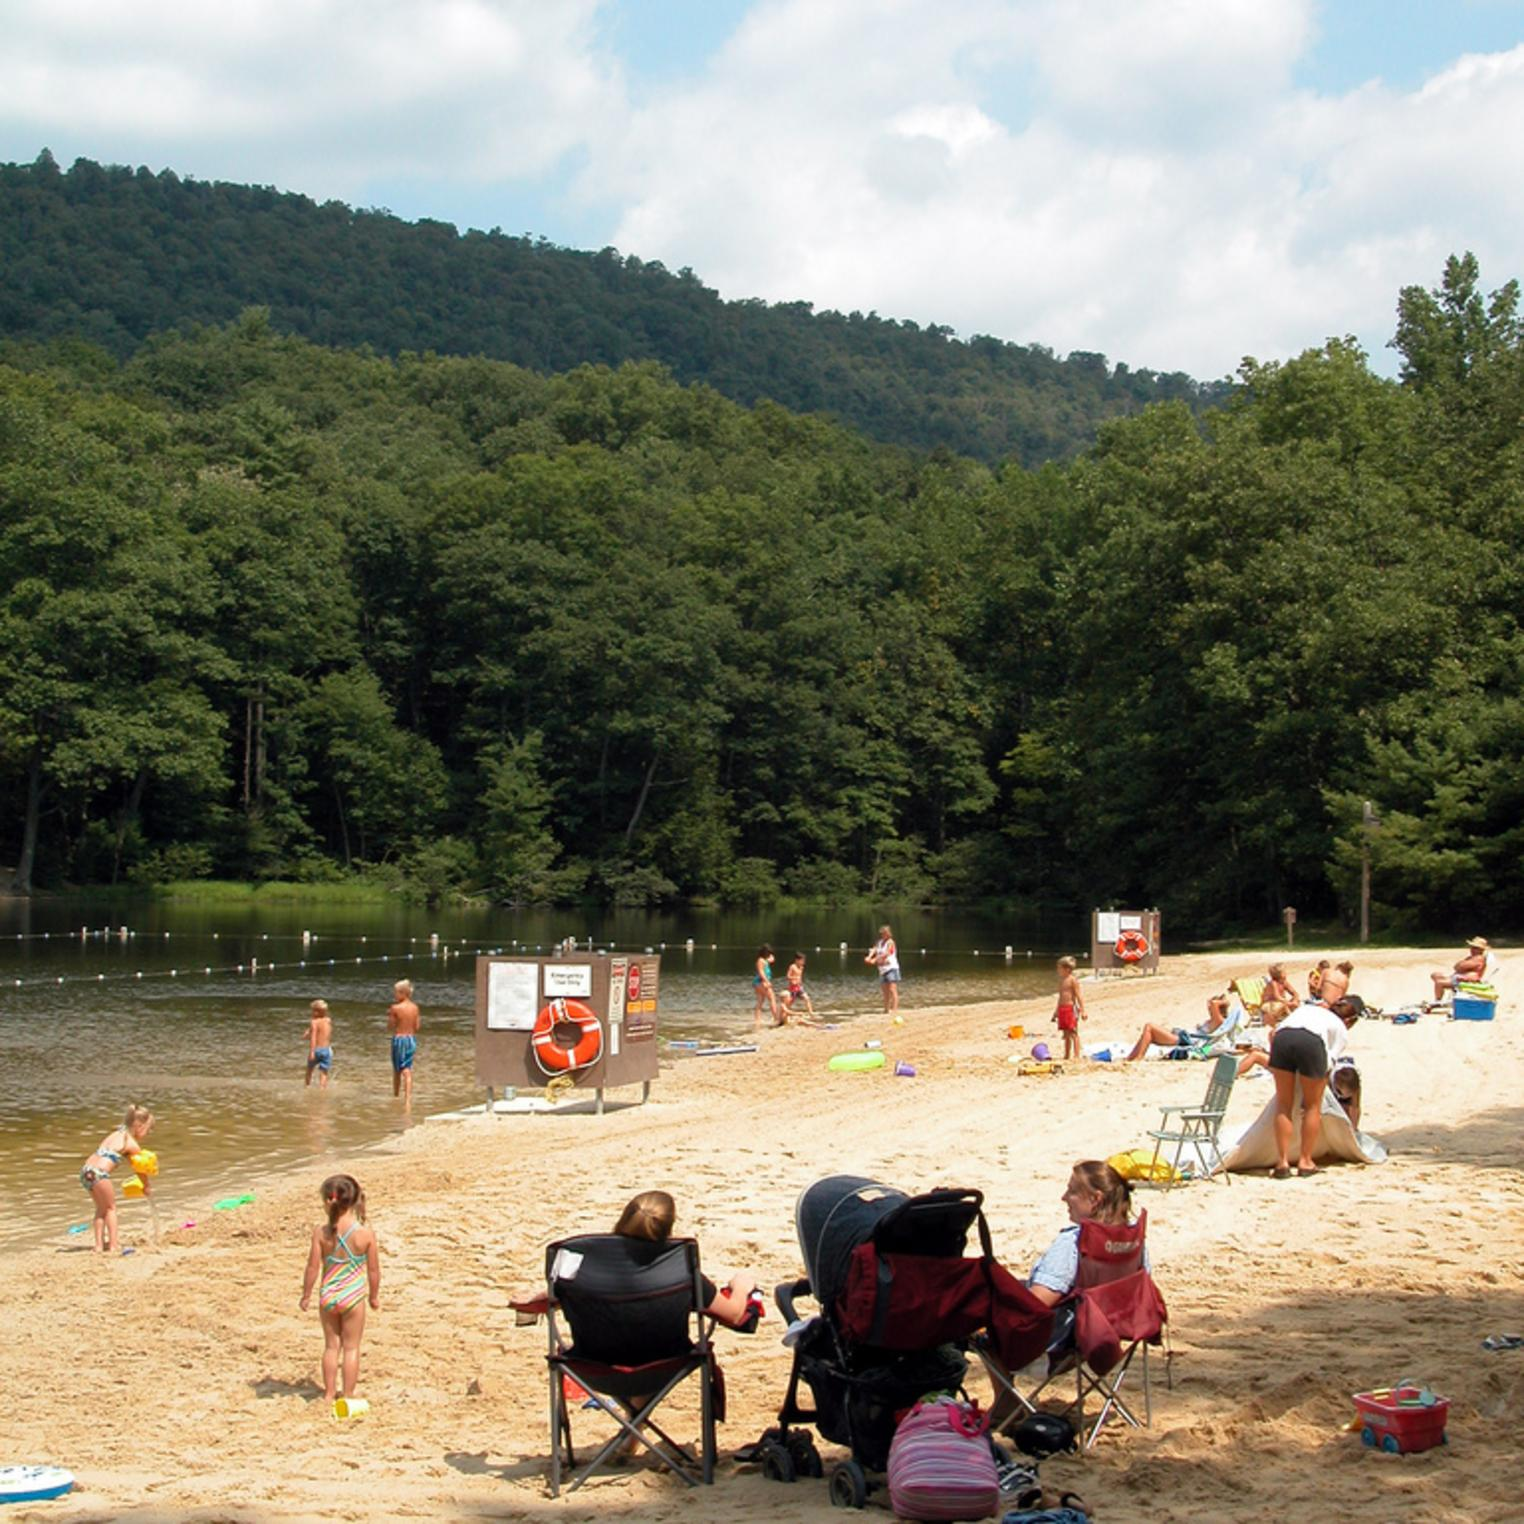 Beach at Doubling Gap Lake in Colonel Denning State Park